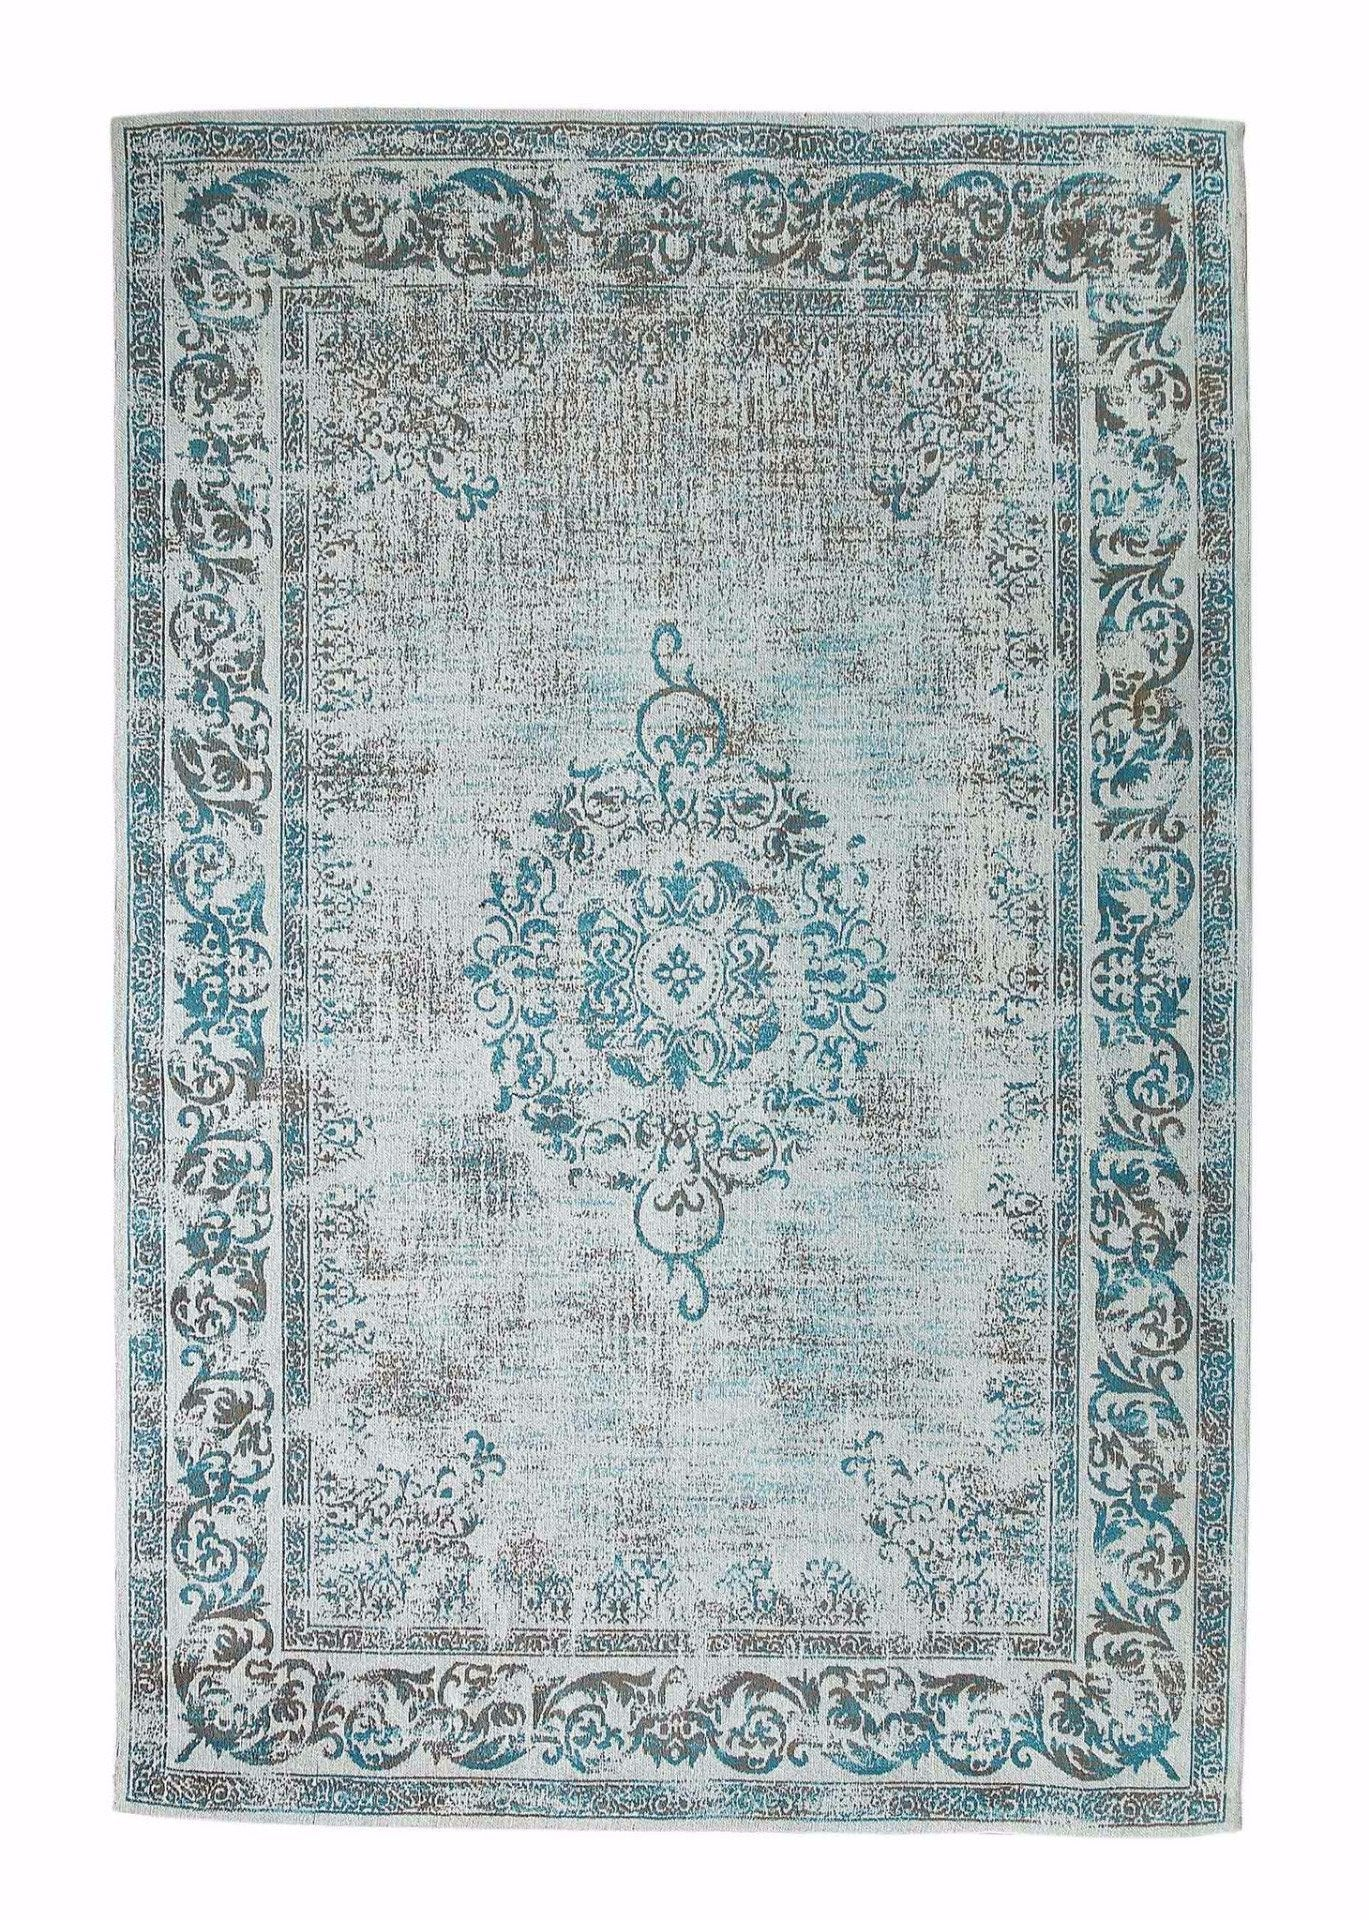 Vintage Azur Blue Rug - greendecore.co.uk - 1